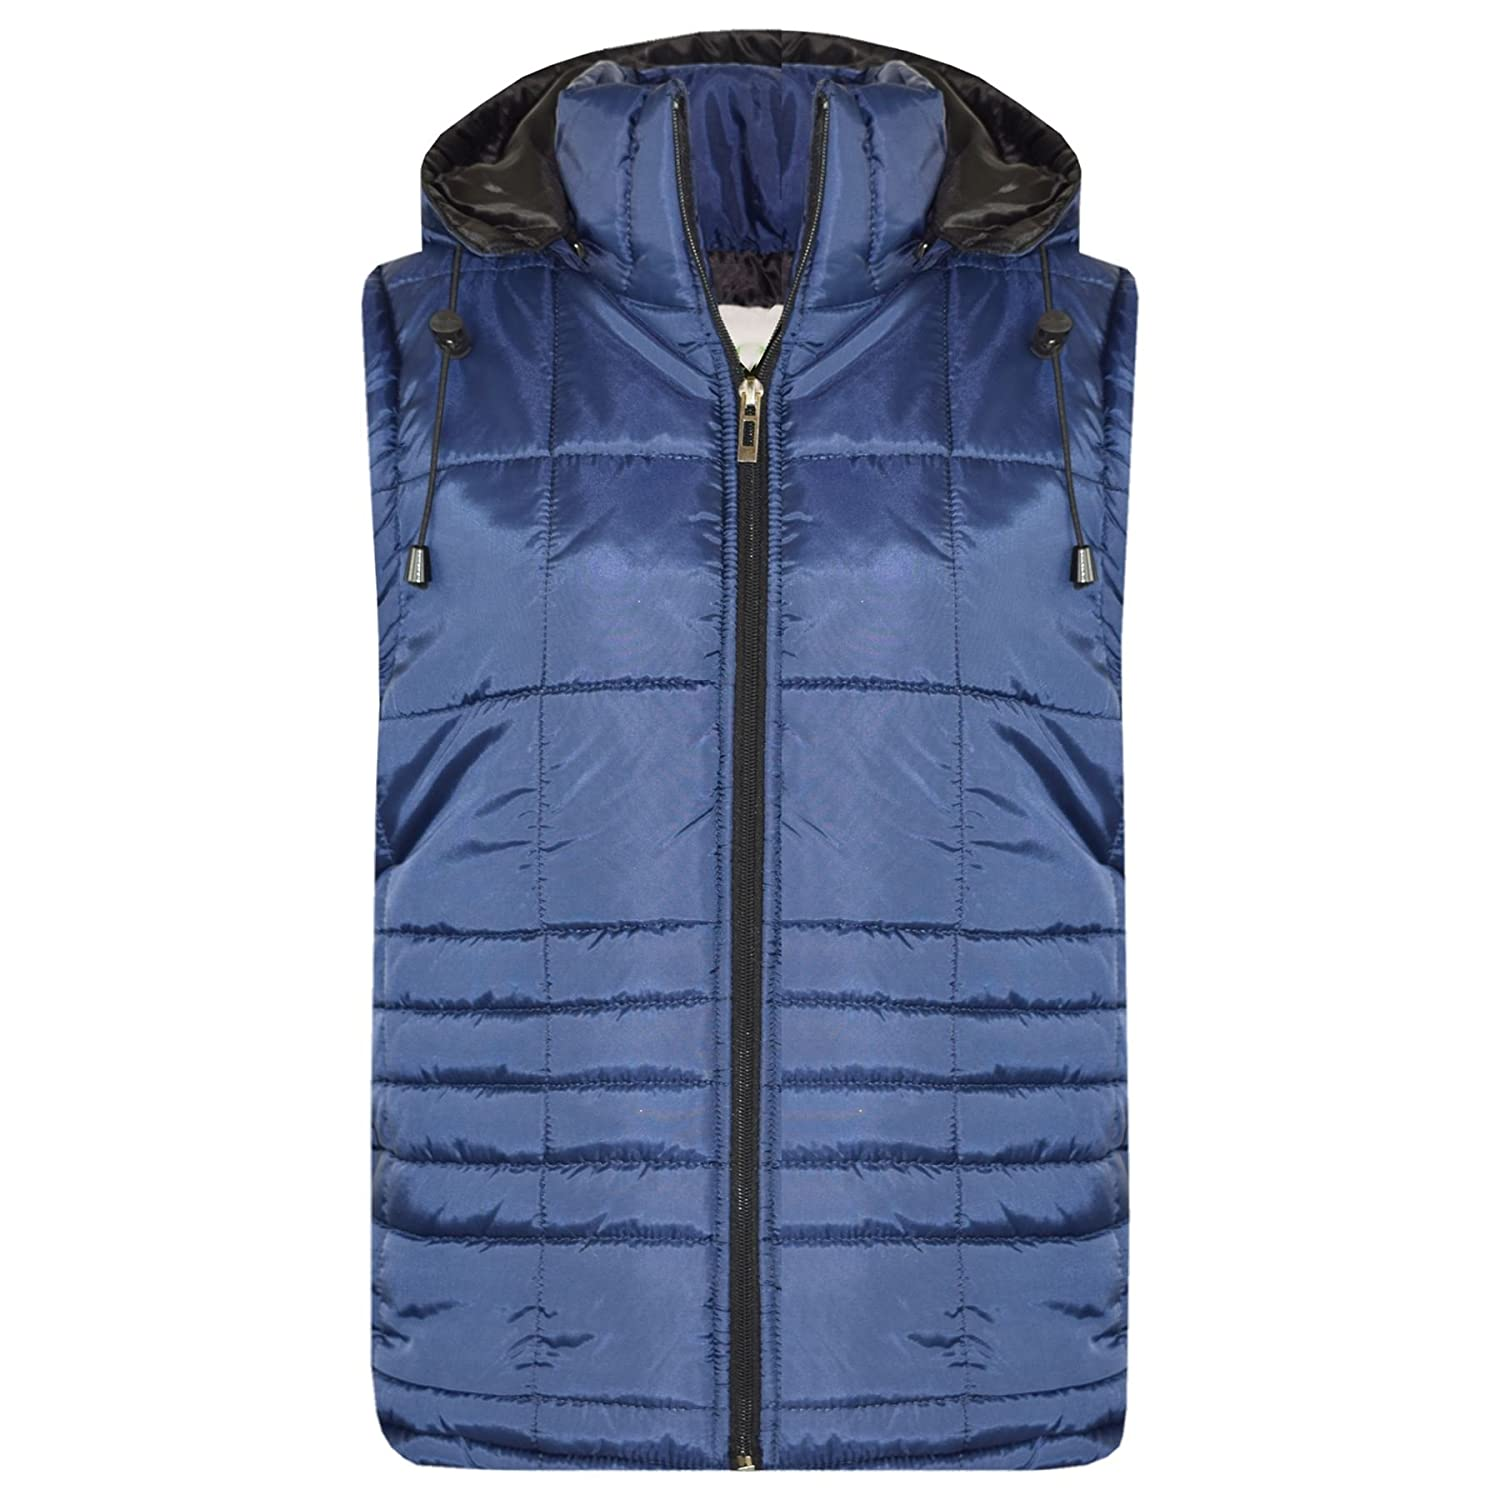 A2Z 4 Kids® Kids Girls Boys Designer's Navy Sleeveless Hooded Padded Quilted Lined Gilet Bodywarmer Fashion Jackets Age 5 6 7 8 9 10 11 12 13 Years